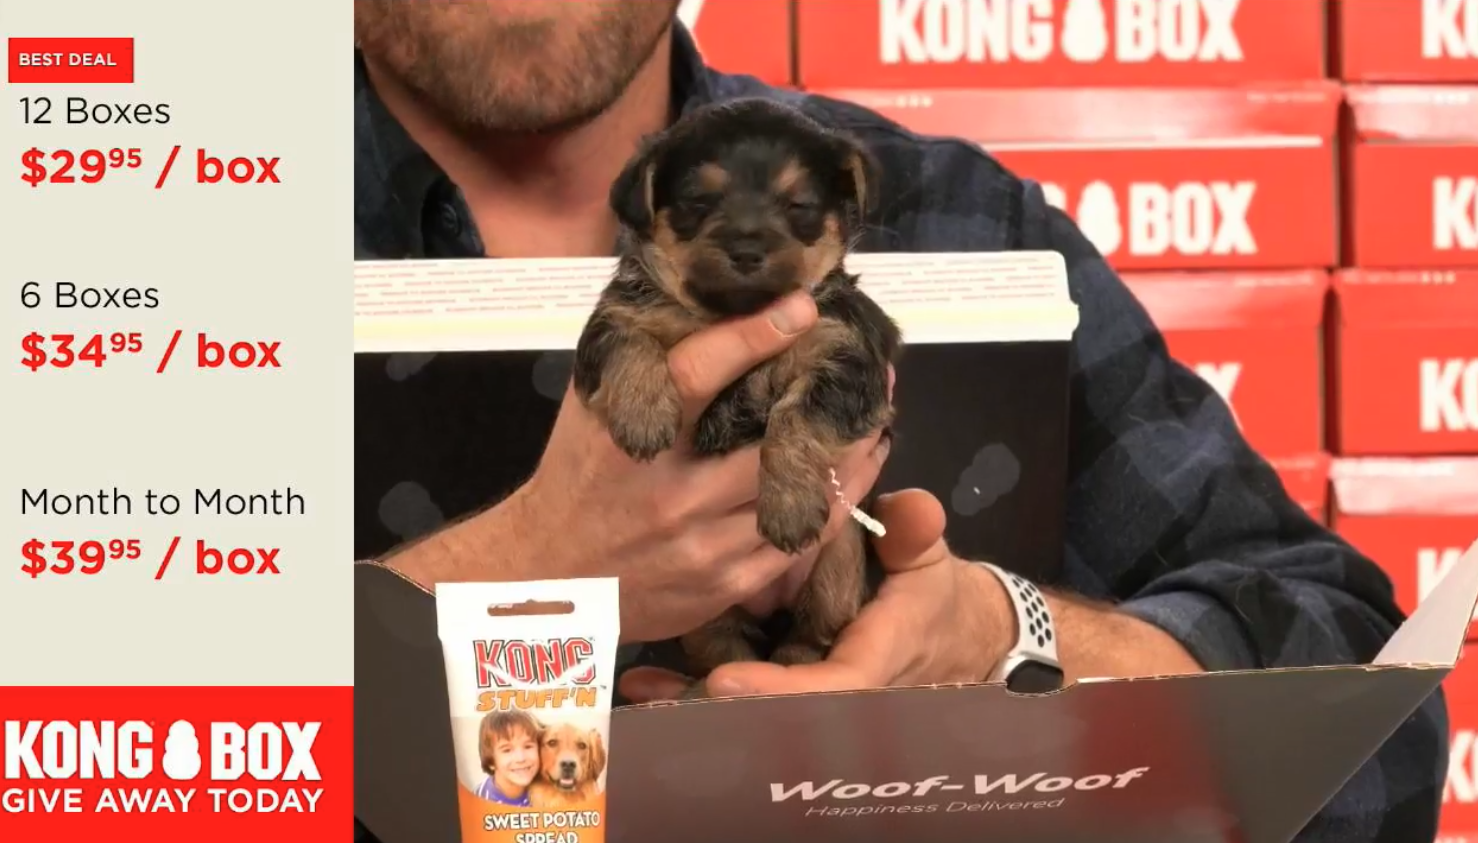 Facebook Live events are a great way to drive engagement to your ecommerce brand and product. Pattern's digital marketing experts brought in live puppies to help drive engagement for KONG Box.